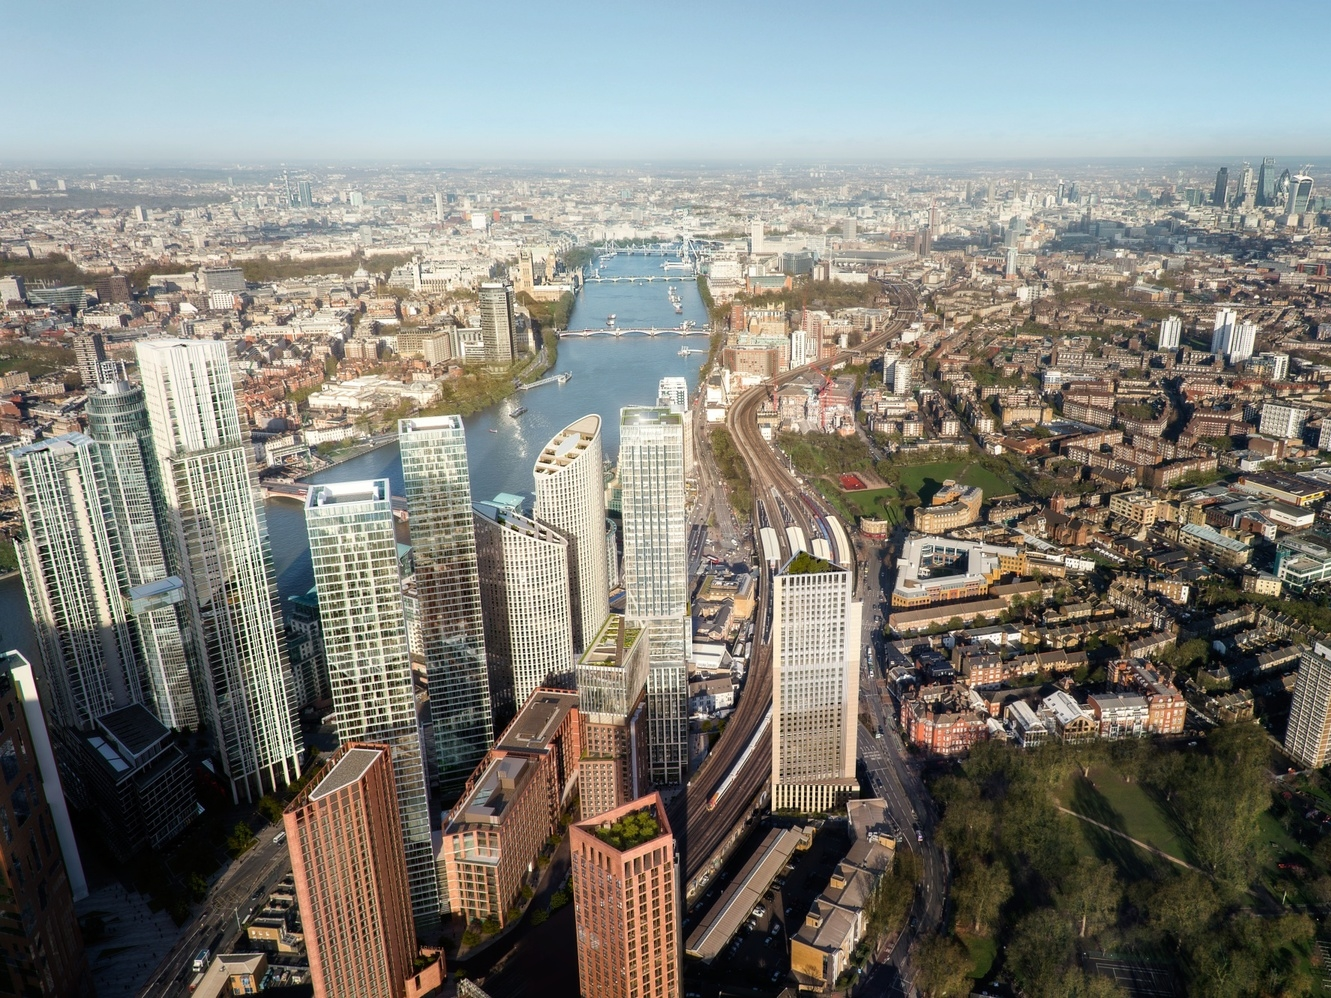 Vauxhall Overview